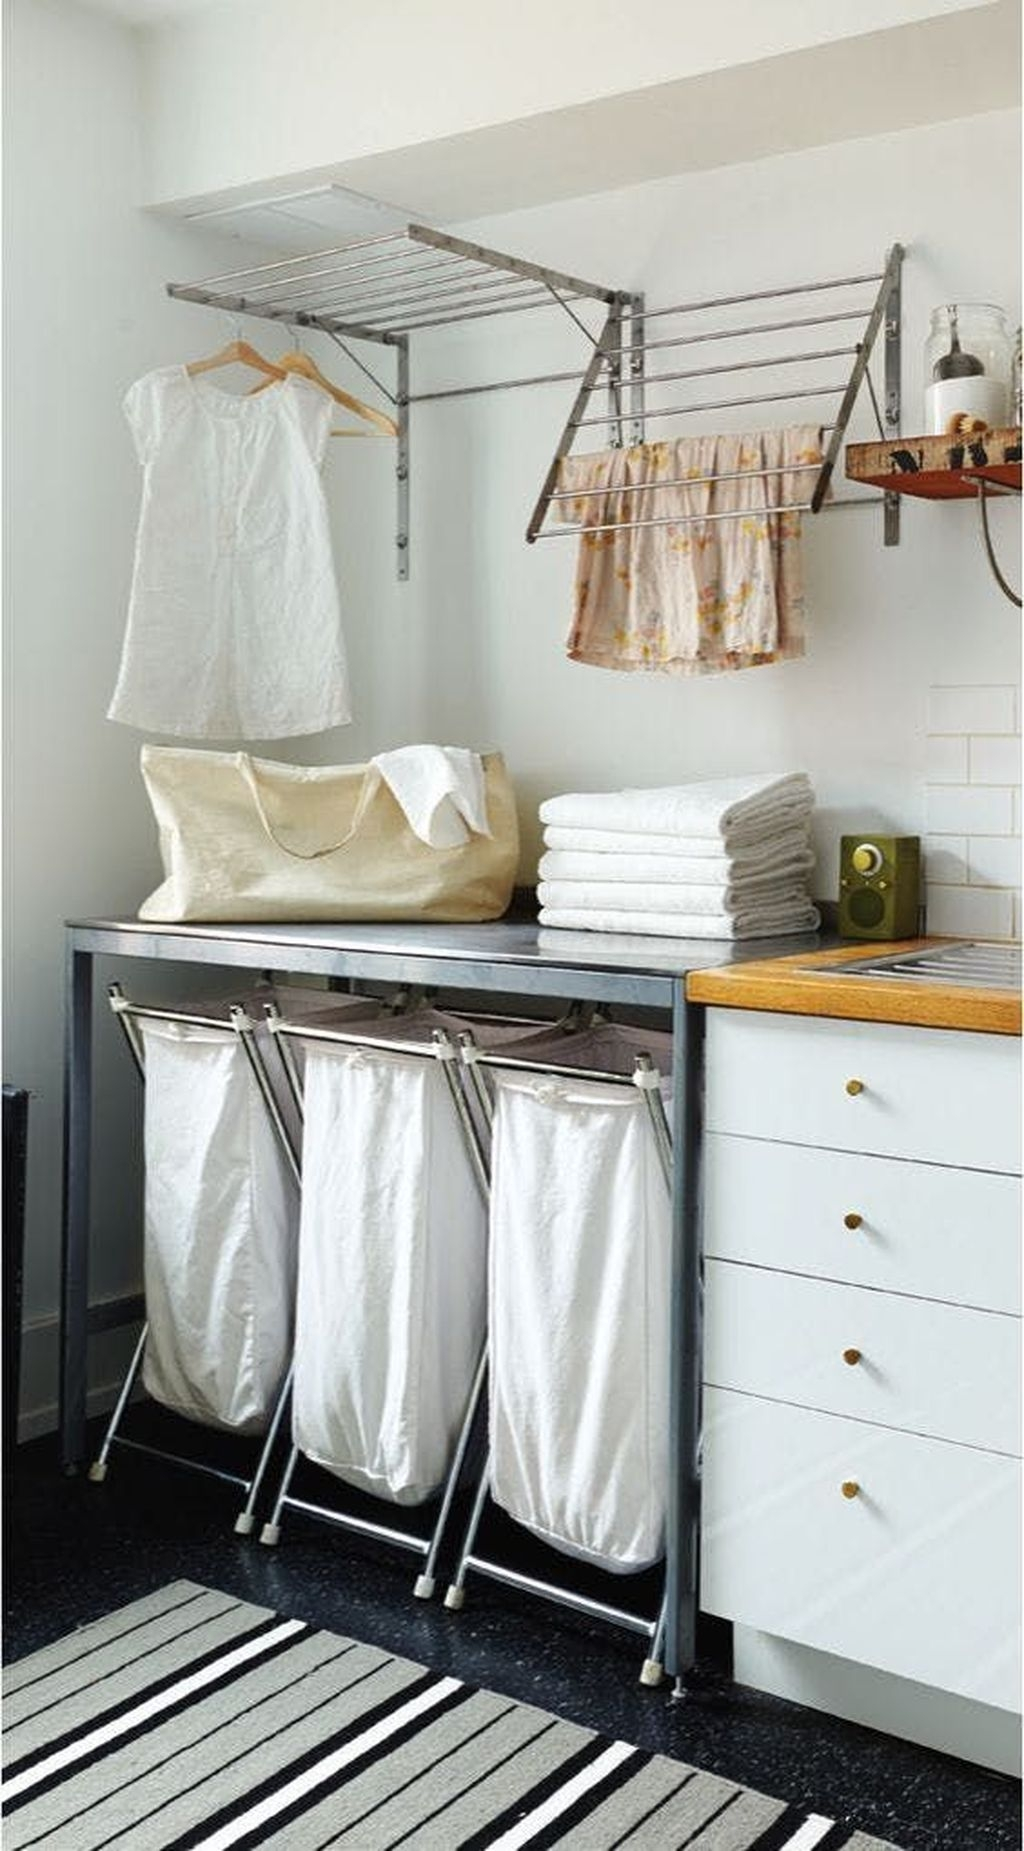 Totally Inspiring Small Functional Laundry Room Ideas 13